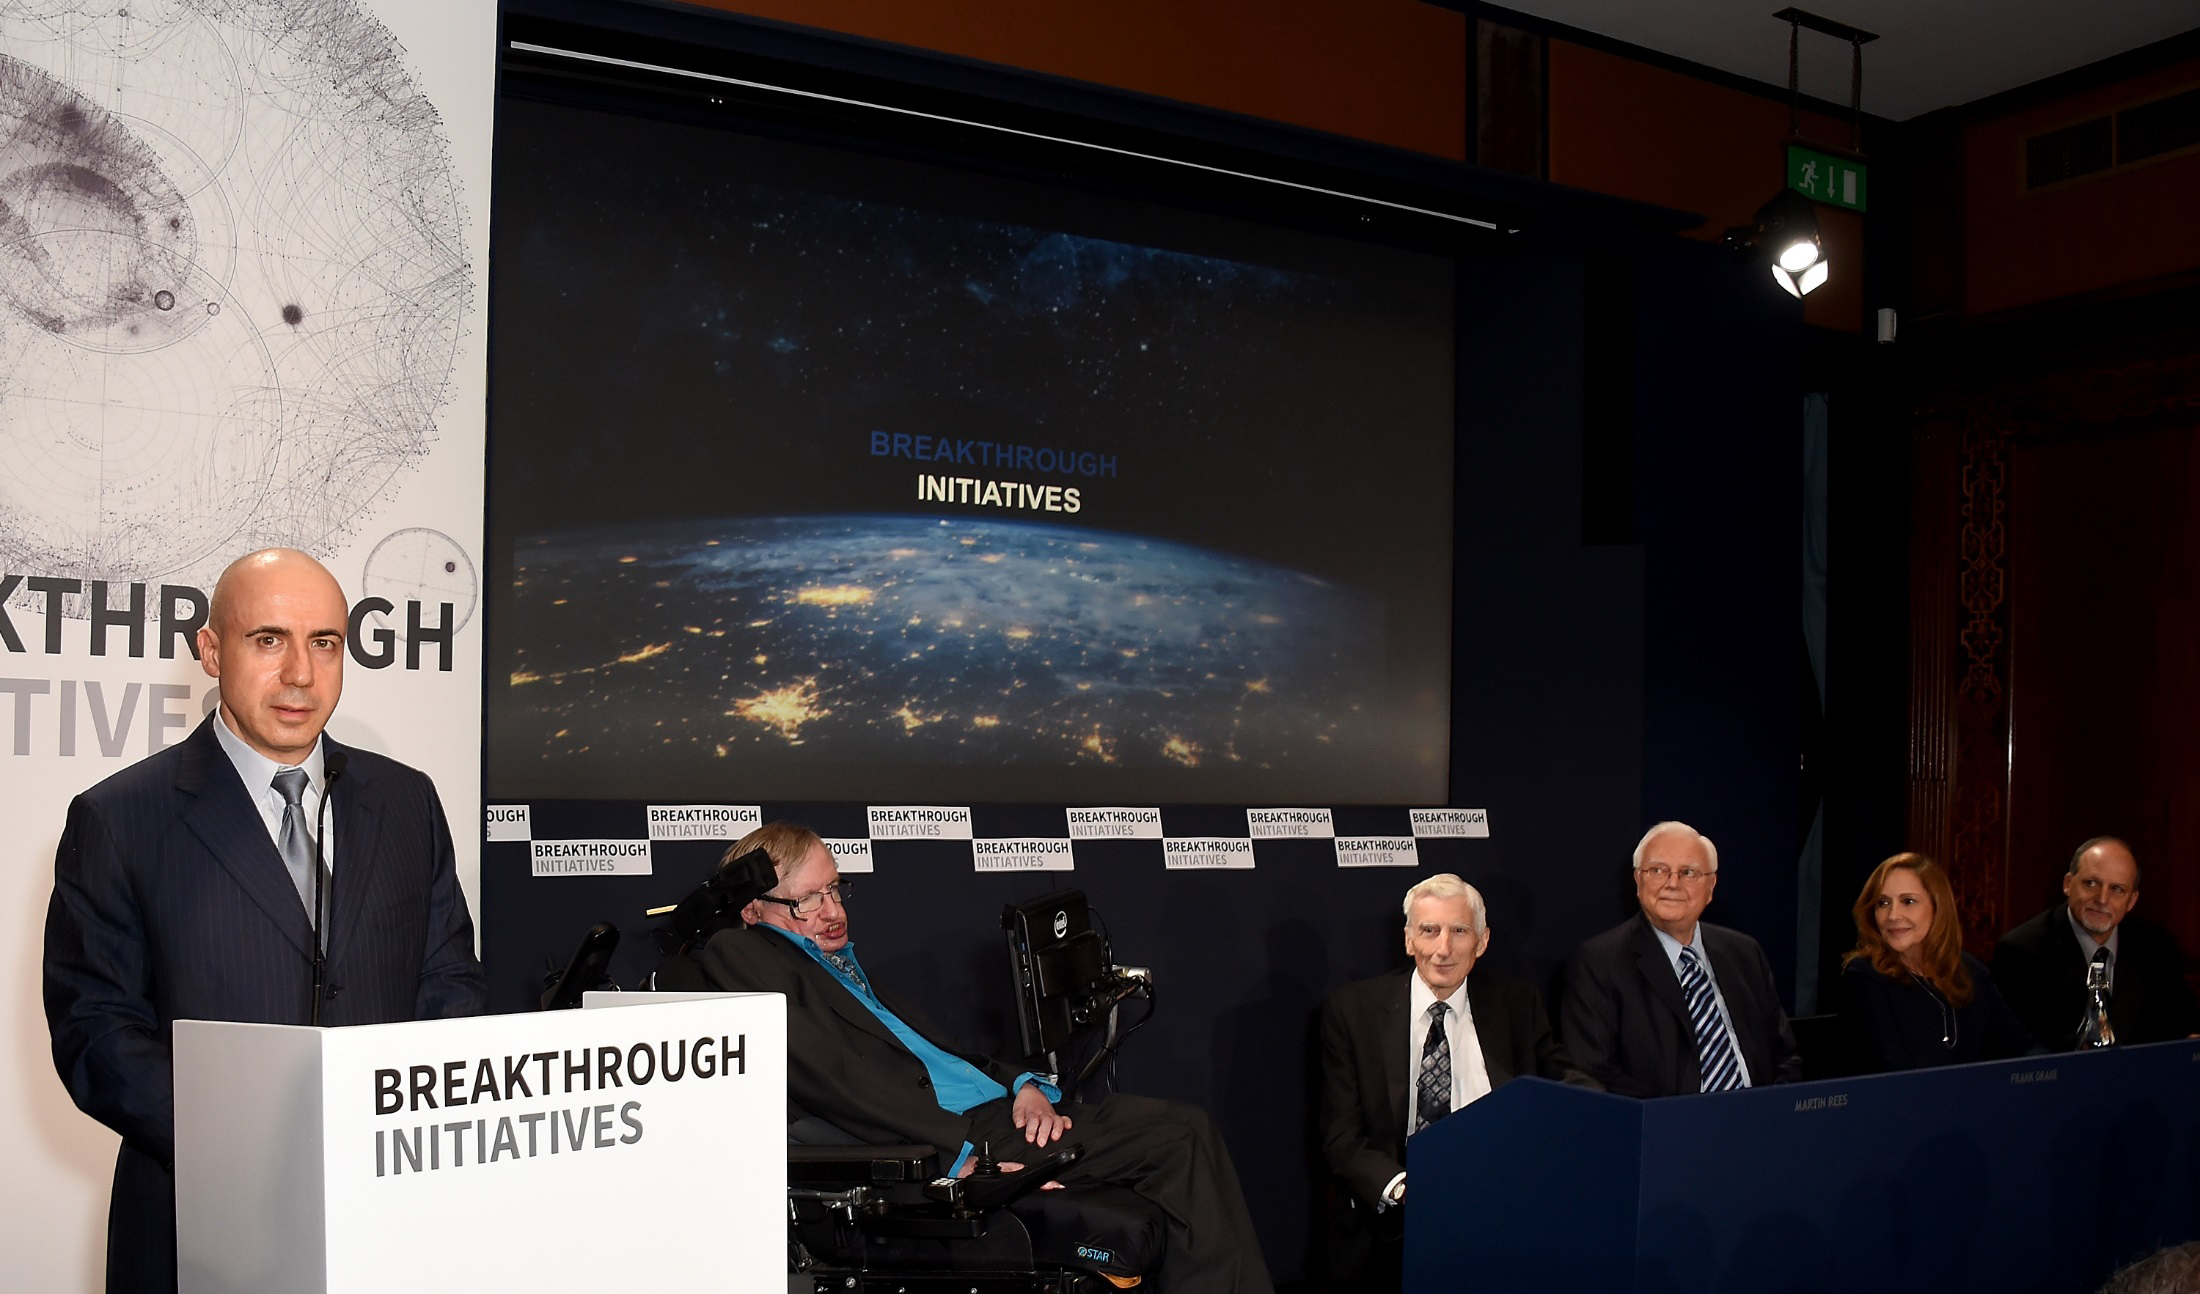 Stephen Hawking to Unveil New Space Exploration Project Stephen-hawking-alien-life-breakthrough-initiatives